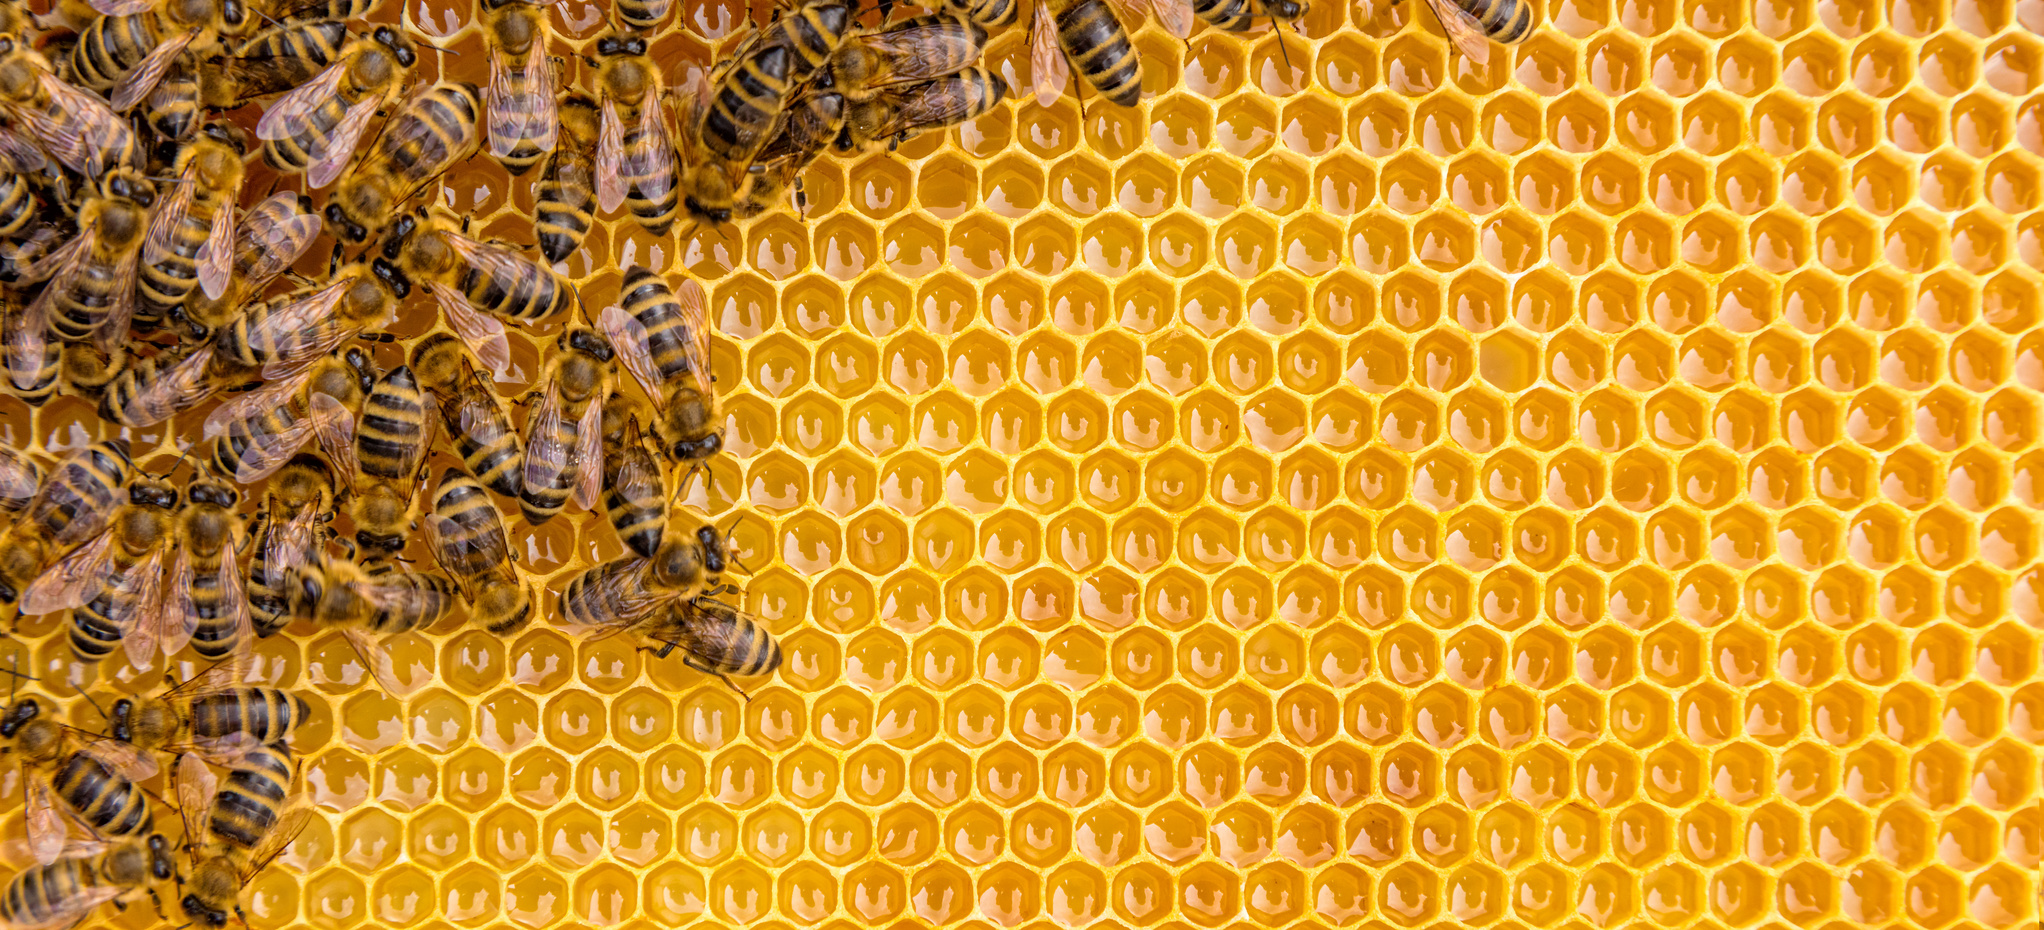 Bees are more attracted towards redheads than any other hair color - Serious Facts